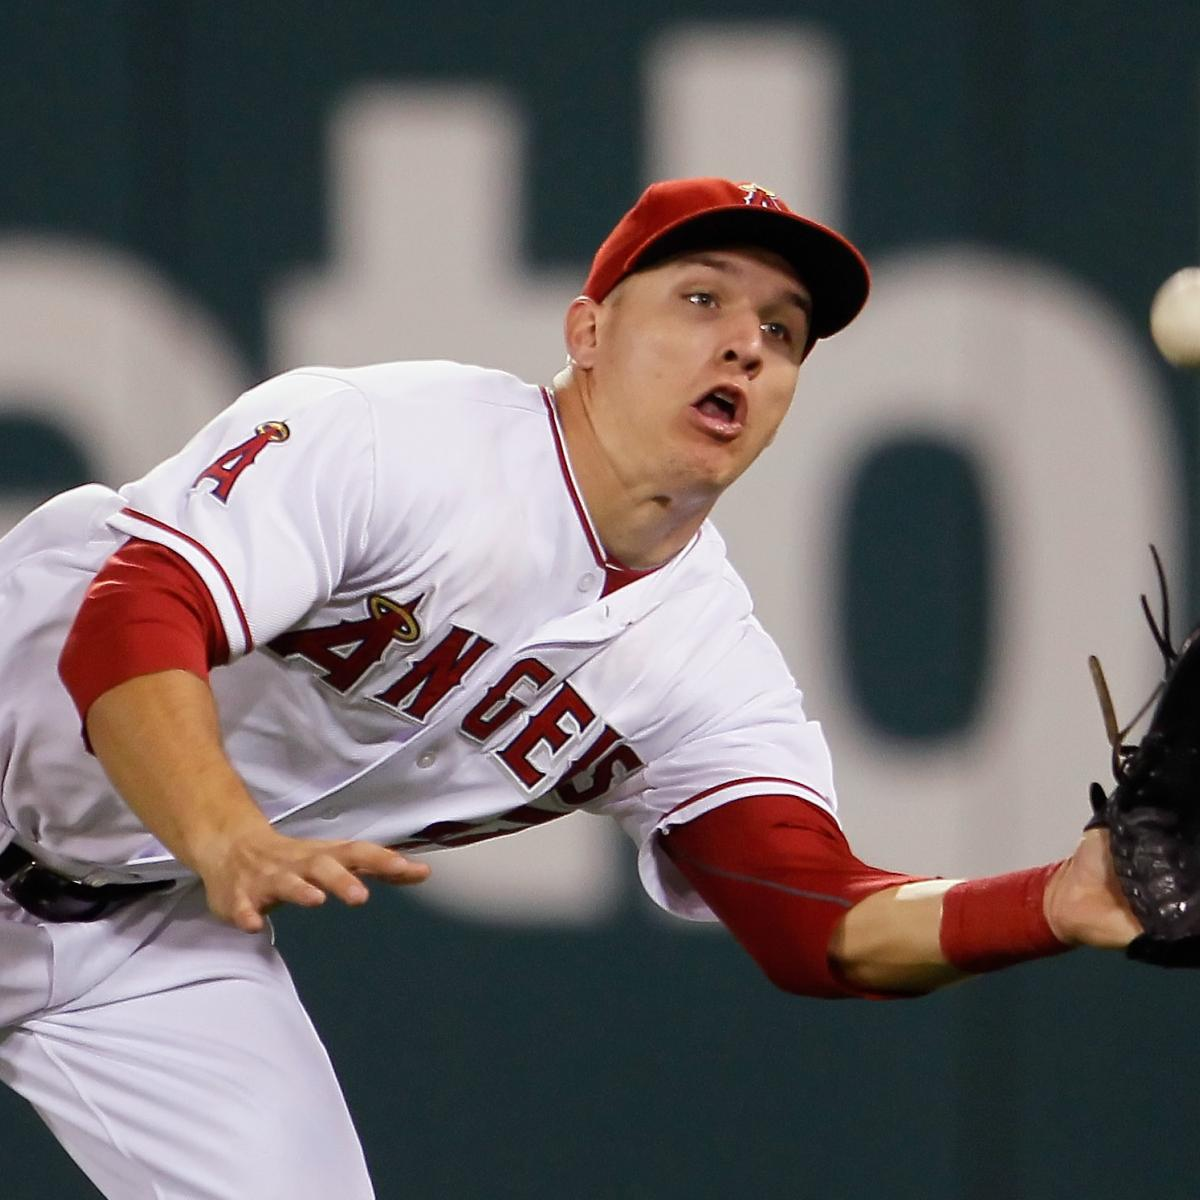 Best Sports Photos Of 2012: MLB Prospects 2012: Ranking The Top 10 Outfielders In